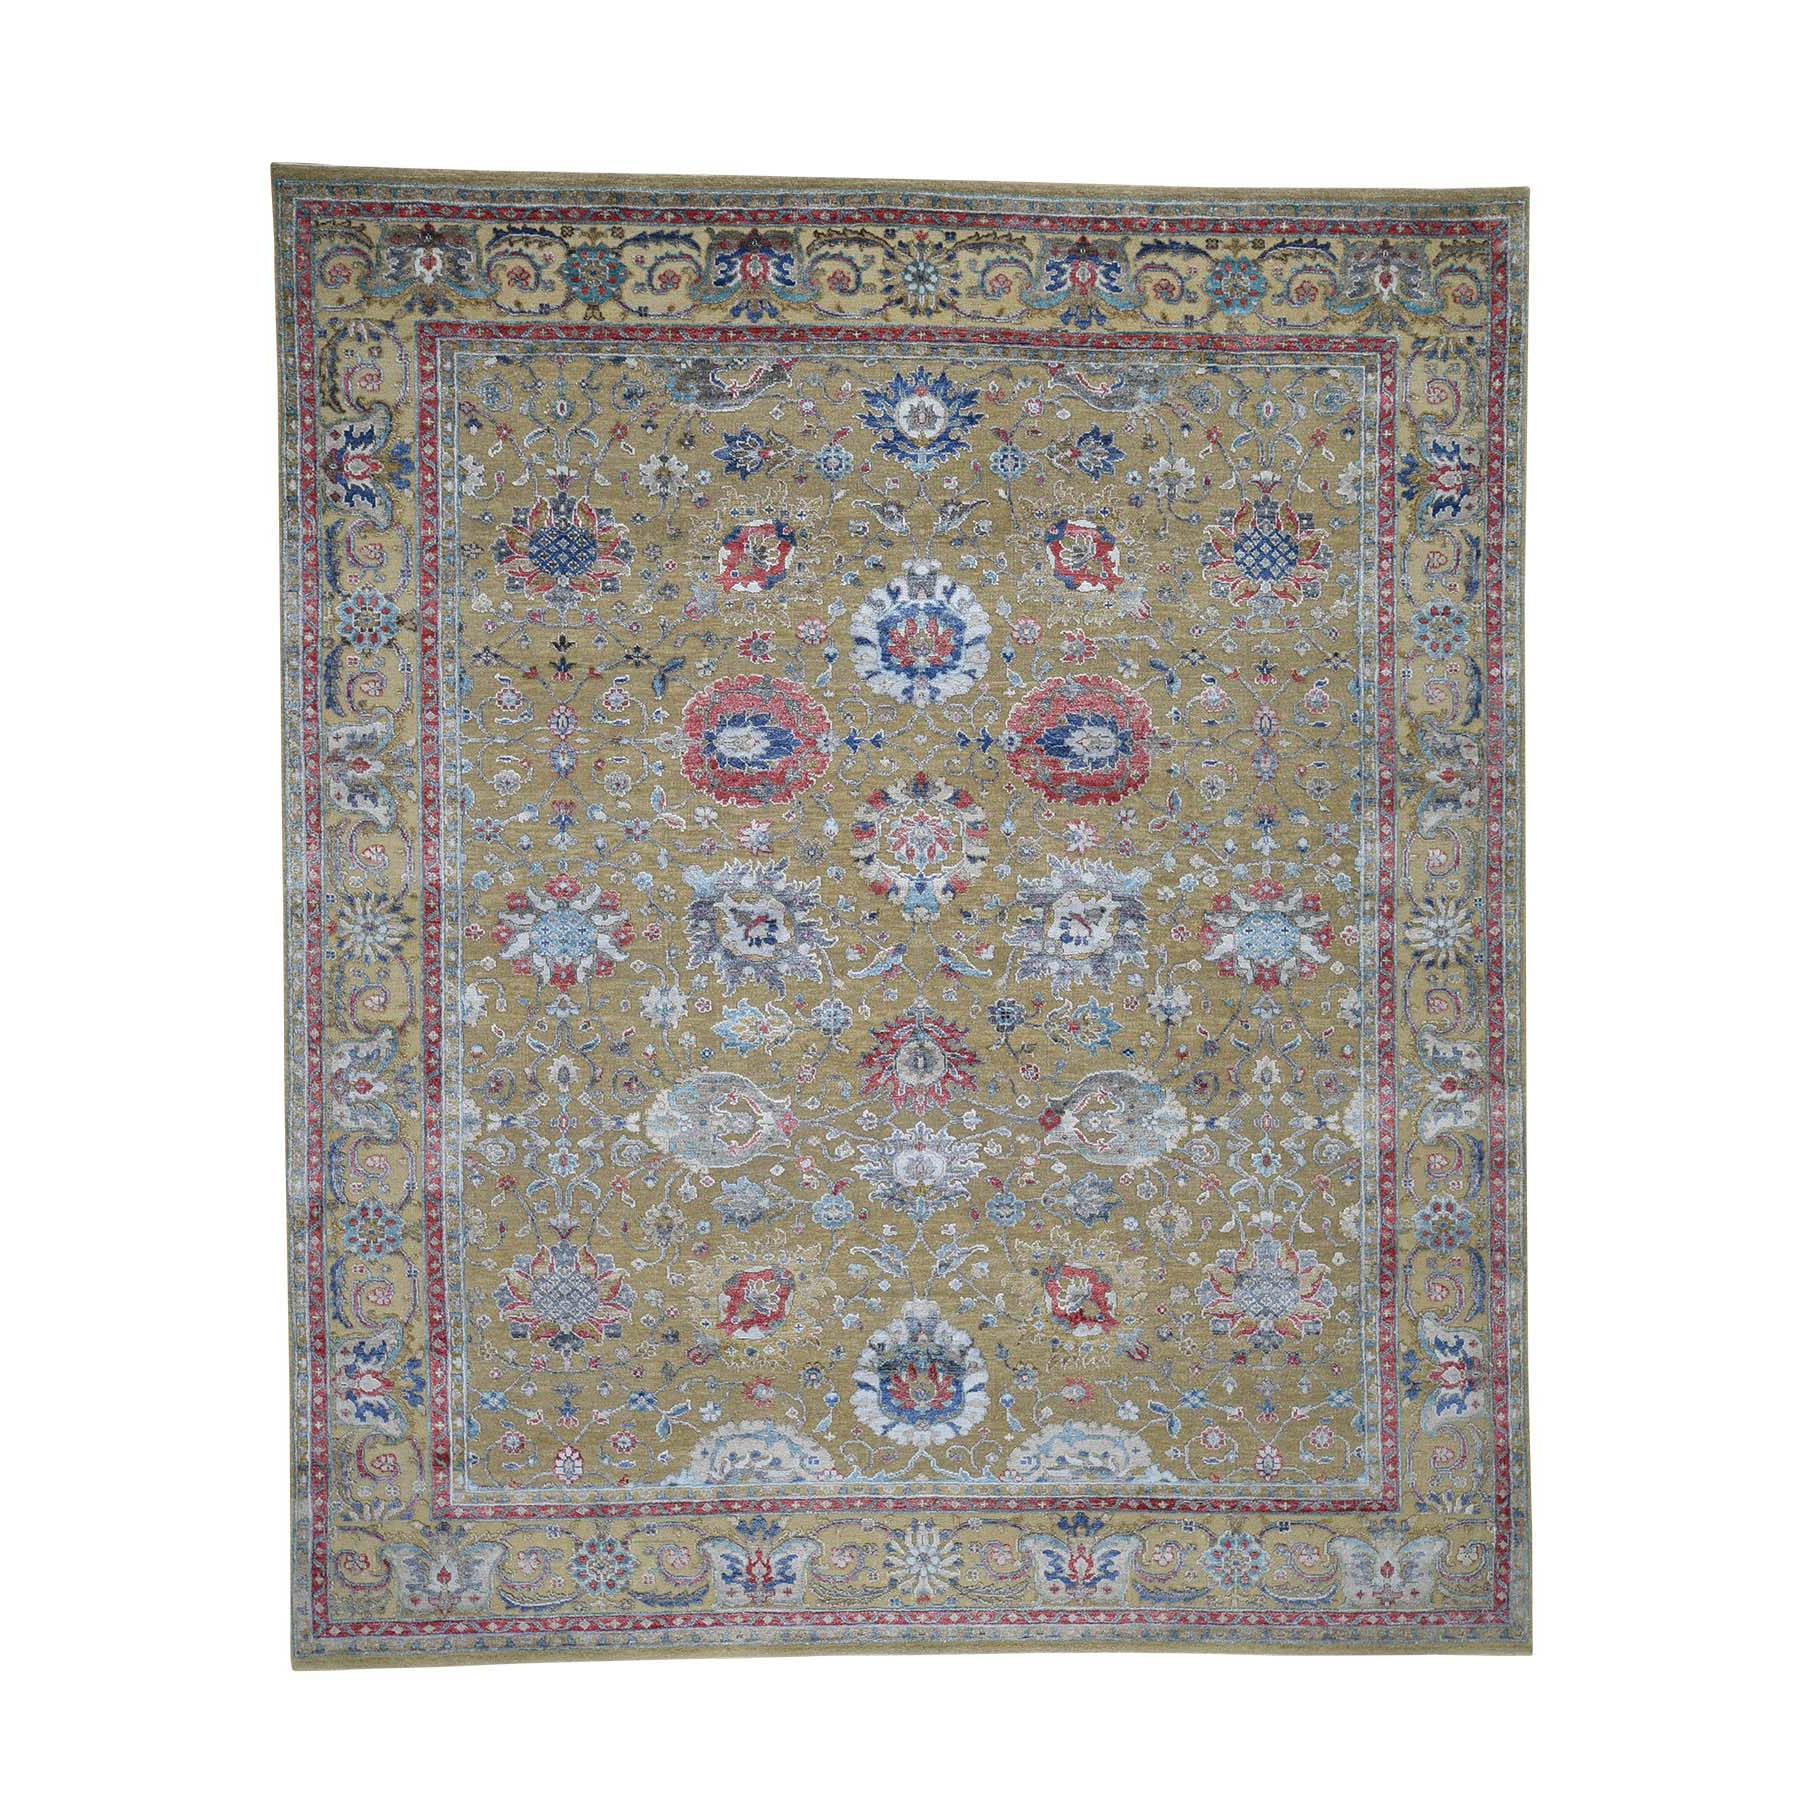 "8'1""x9'7"" Textured Silk With Textured Wool Mahal Design Hand Woven Oriental Rug"